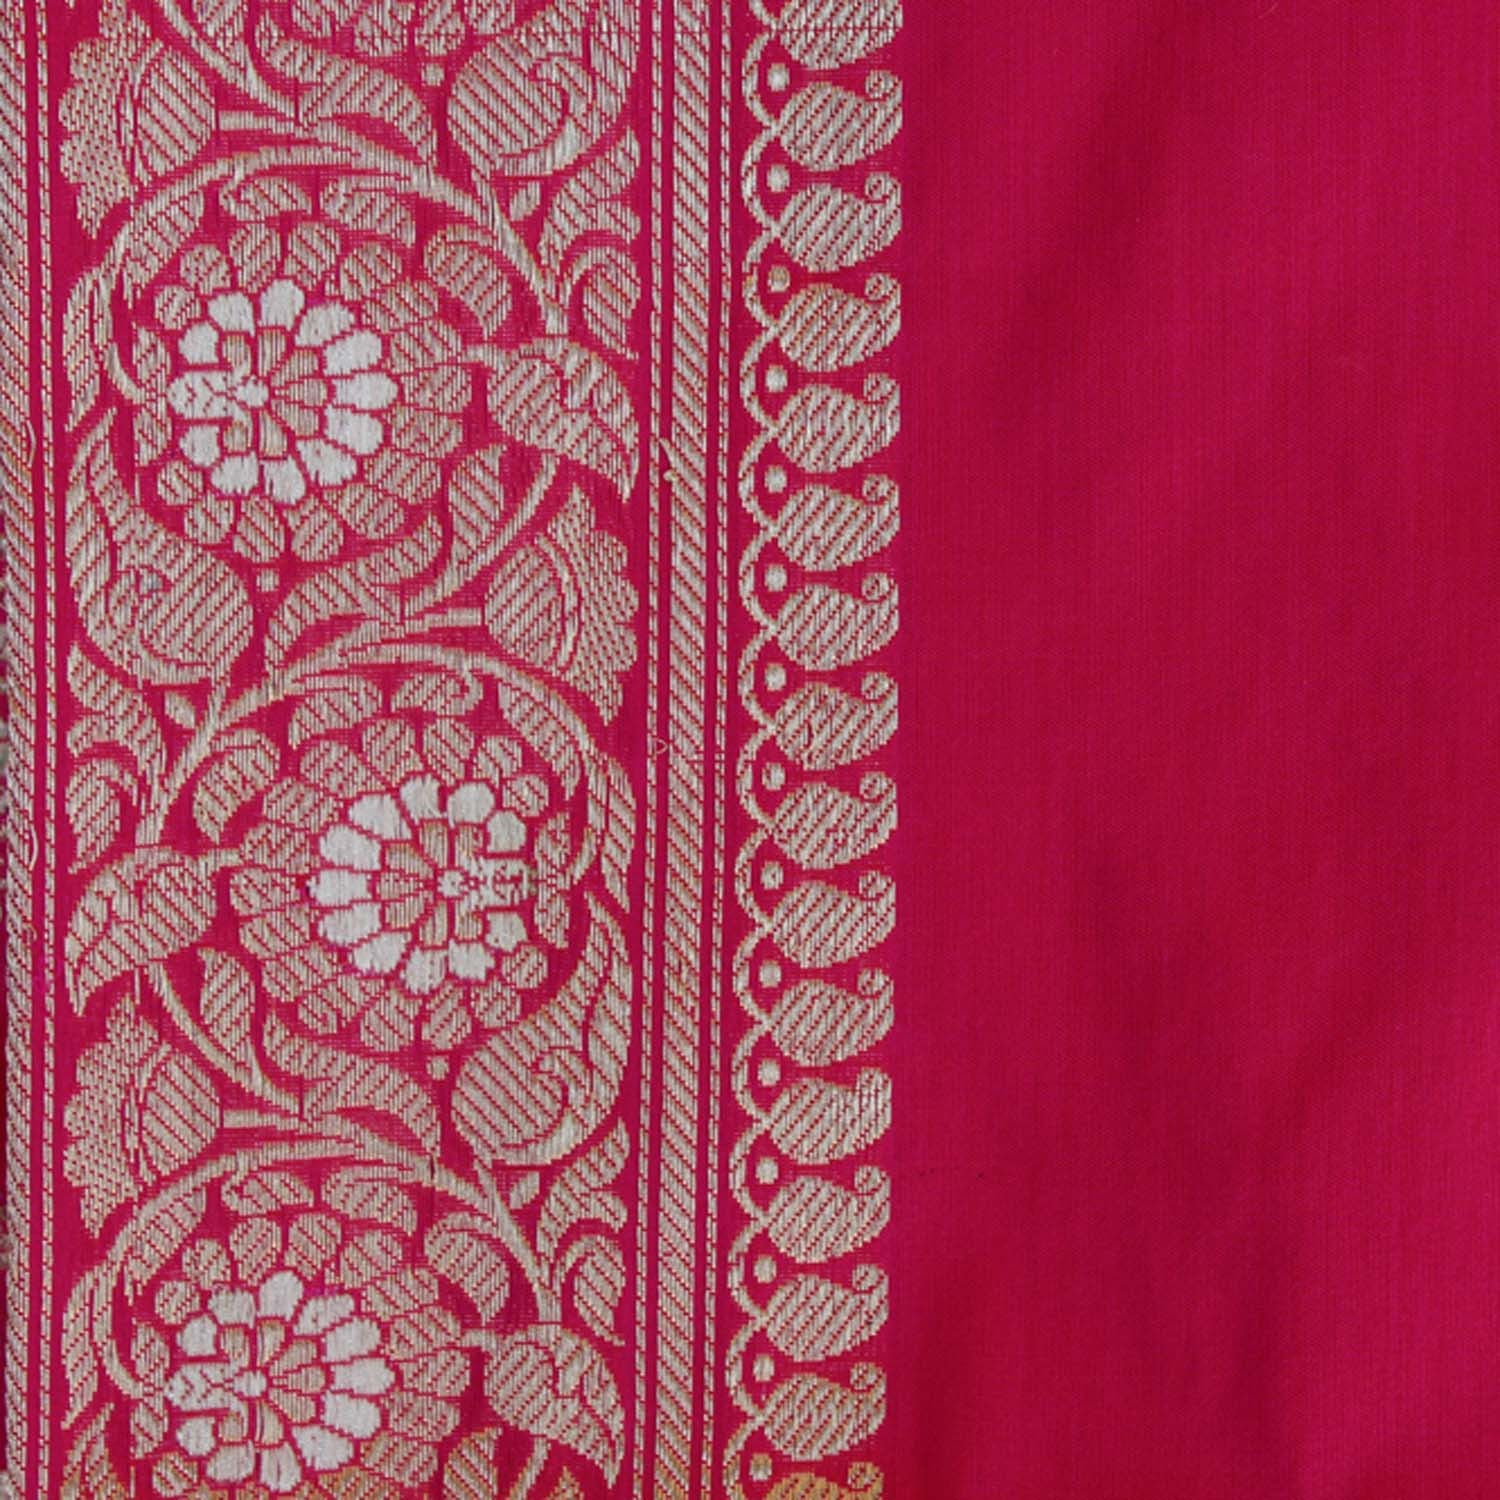 Red-Indian Pink Shot Color Pure Katan Silk Banarasi Handloom Saree - Tilfi - 5